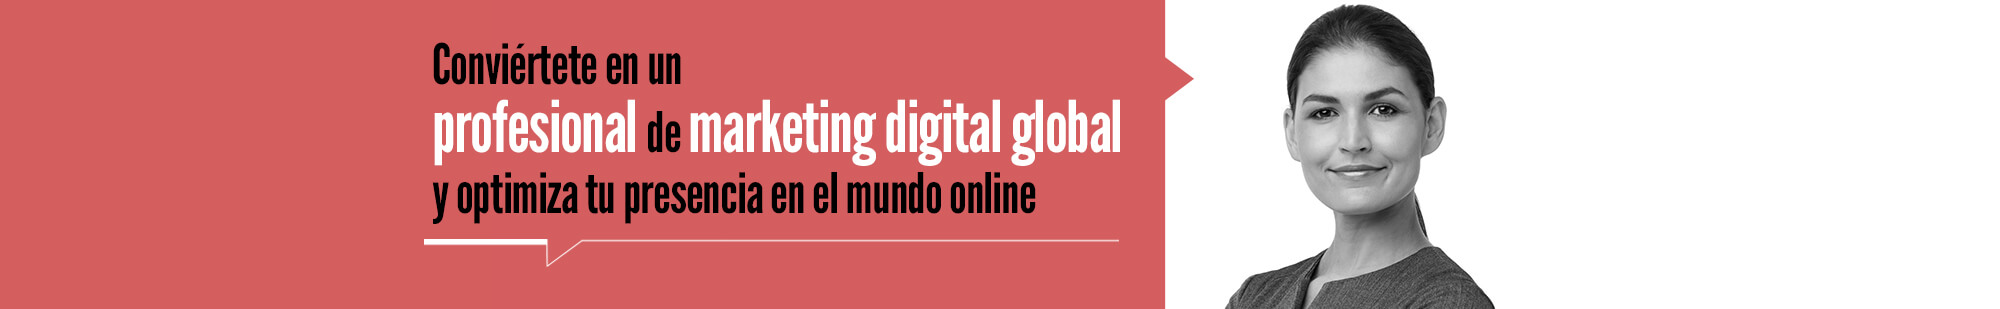 Máster Online en Competencias de la Economía Digital con especialidad en Marketing Digital